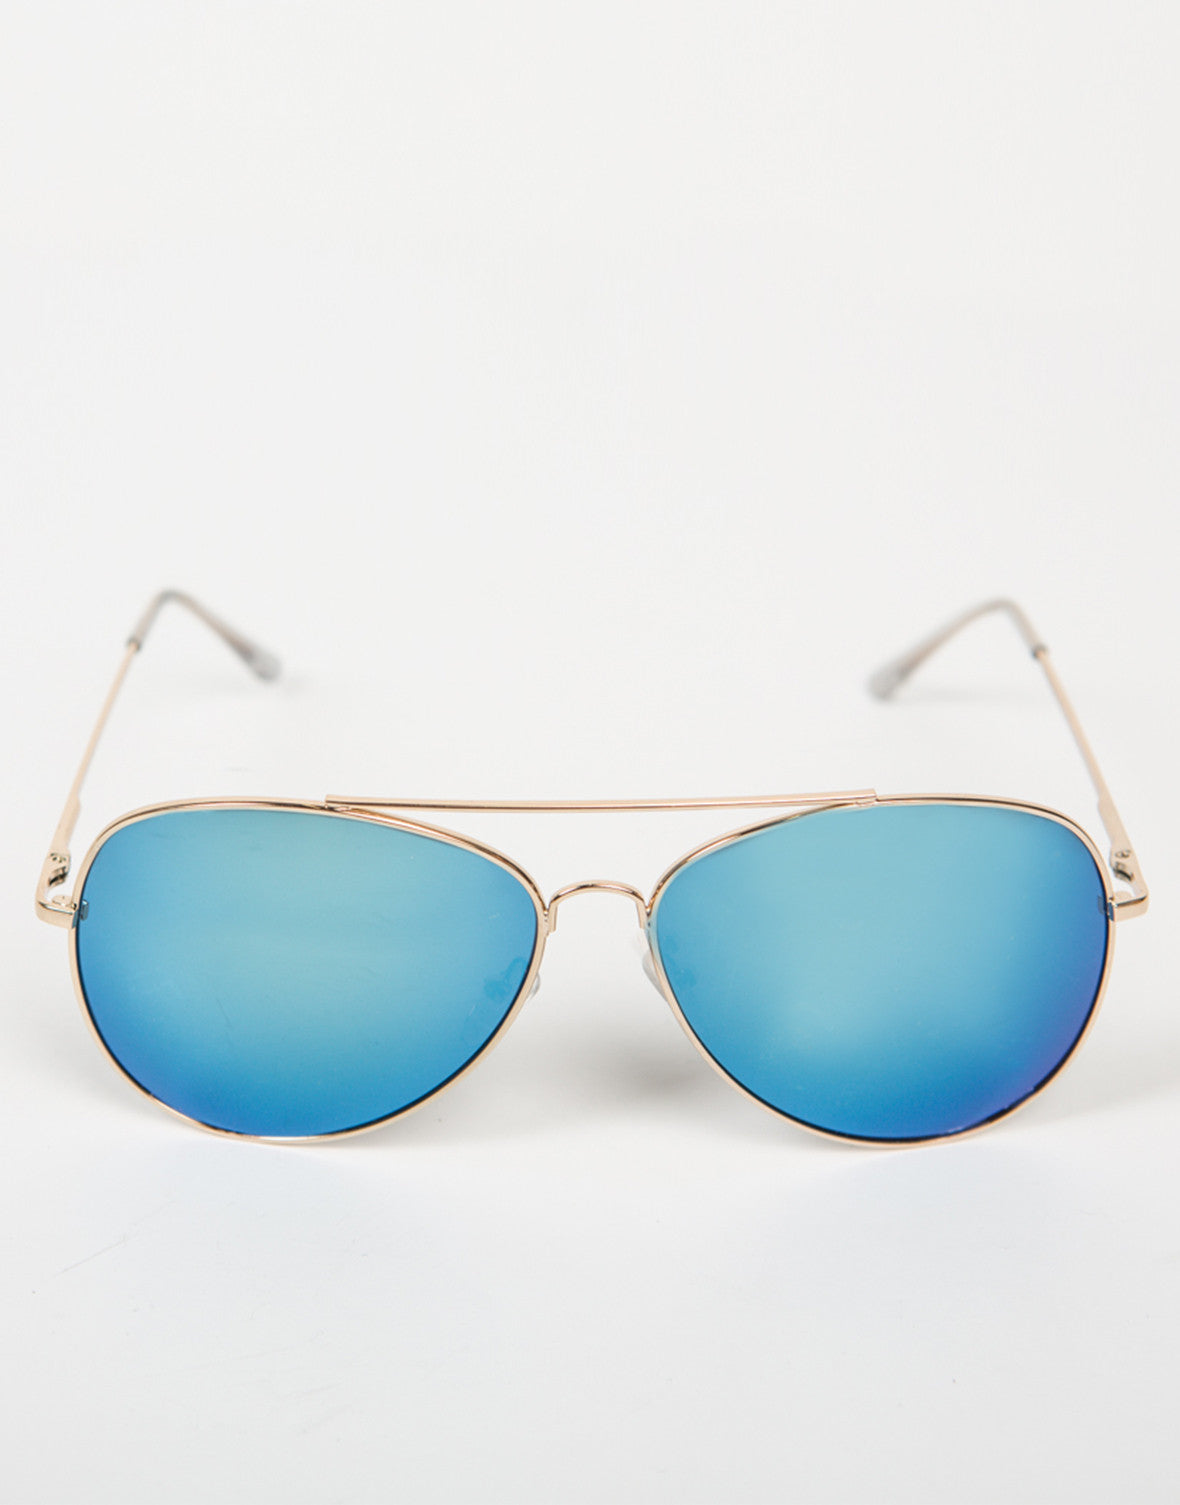 Front View of Oversized Aviator Mirrored Sunnies